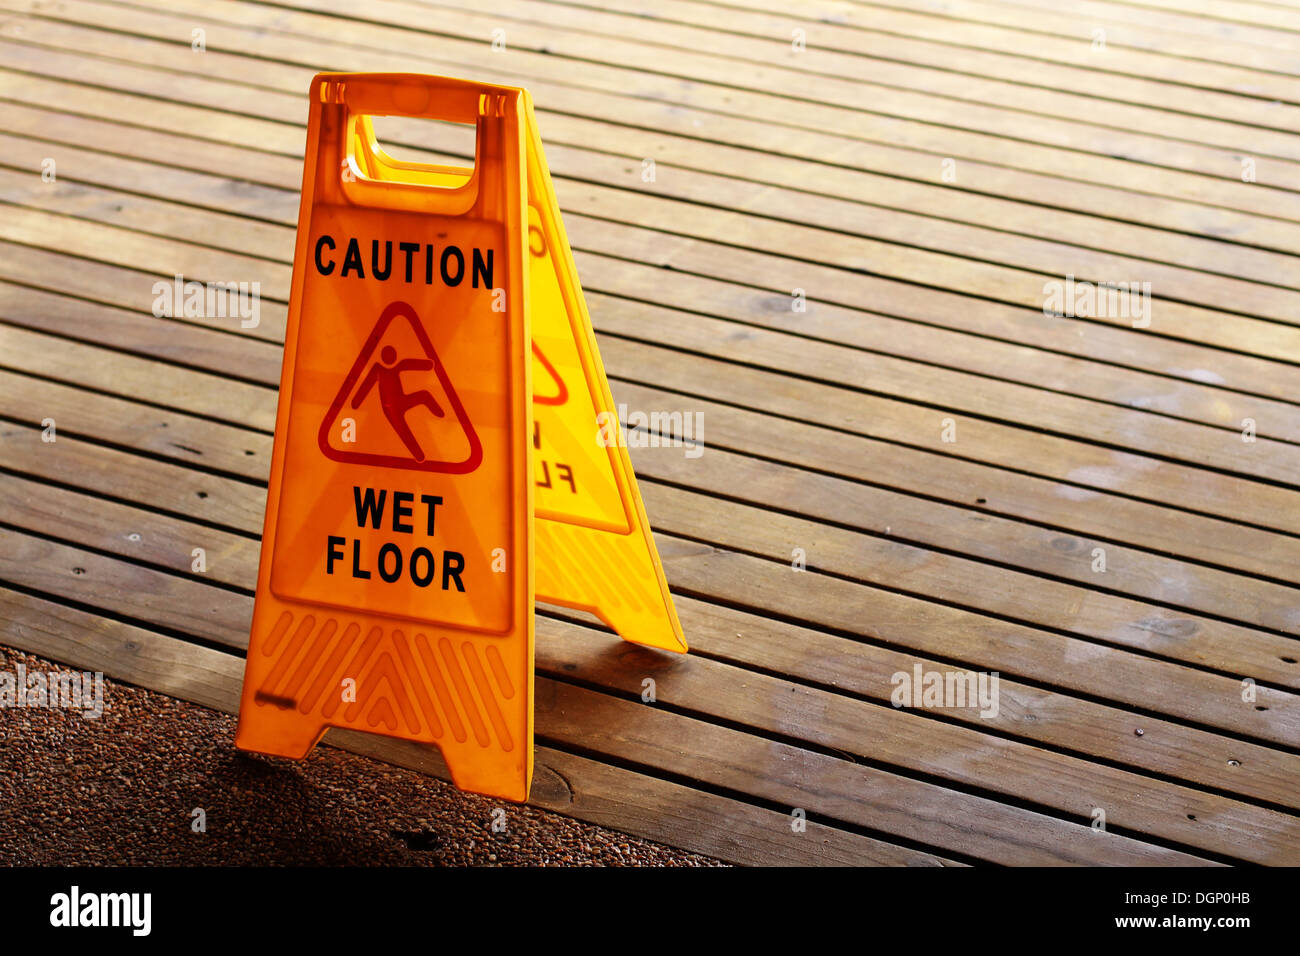 A wet floor sign on a wood deck - Stock Image